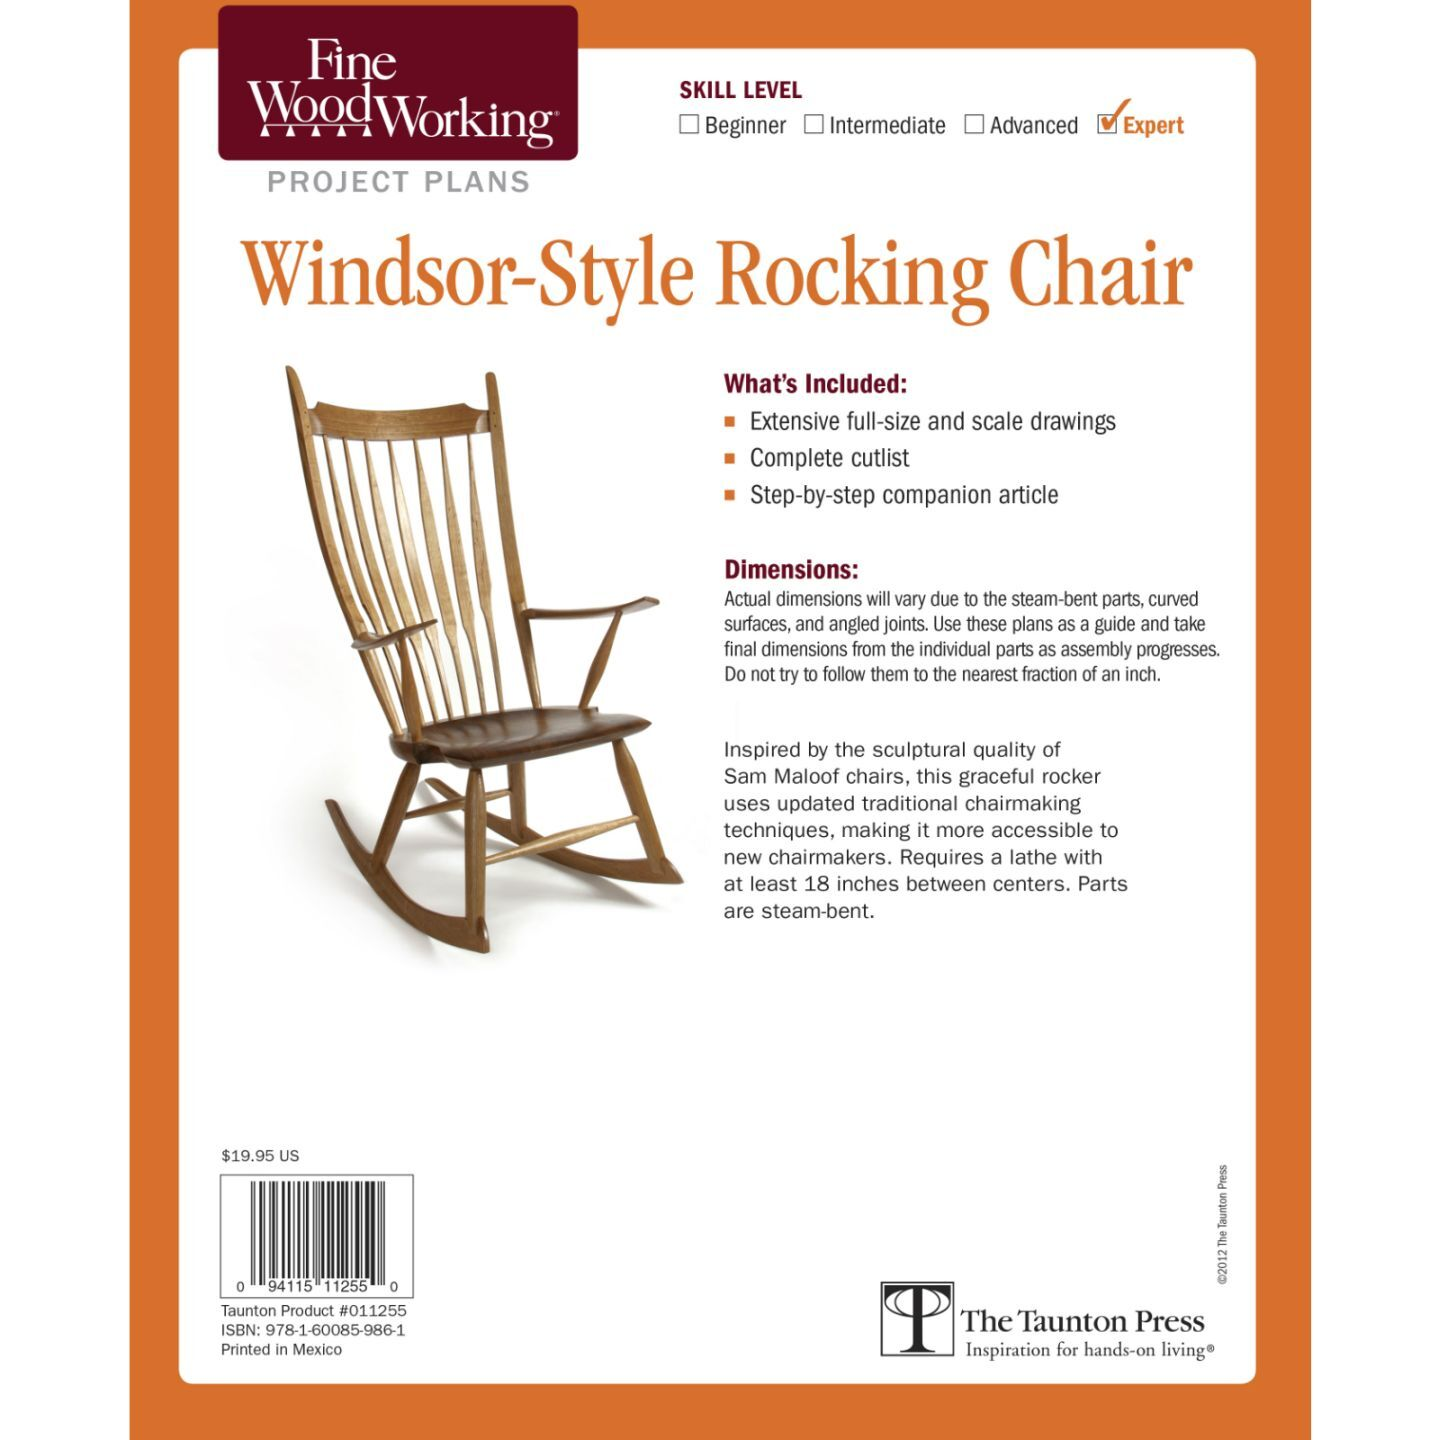 rocking chair fine woodworking folding office depot windsor style plan taunton press